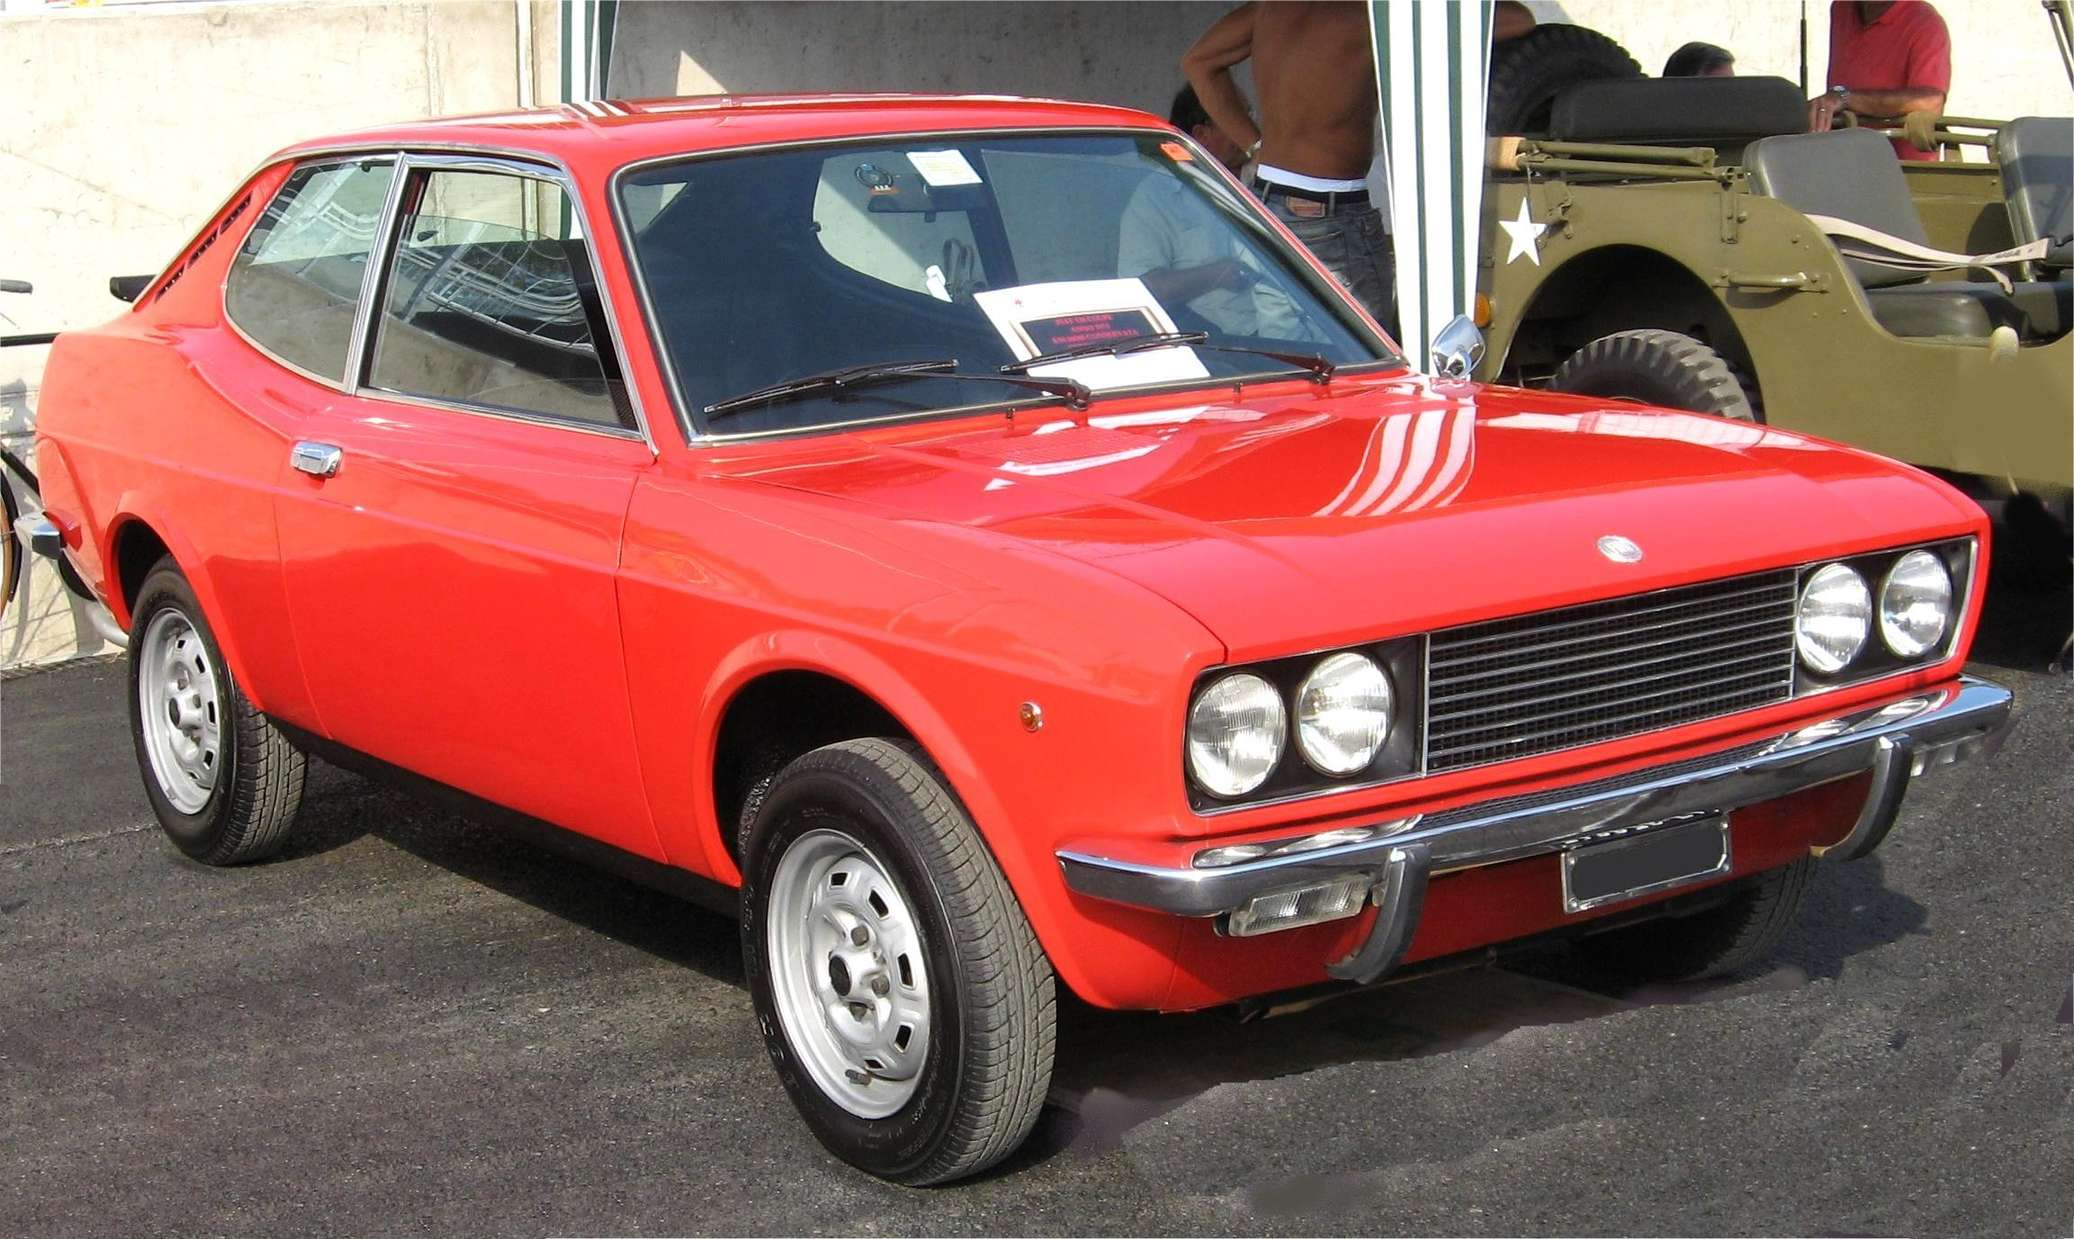 Fiat 128 coupe #9625603